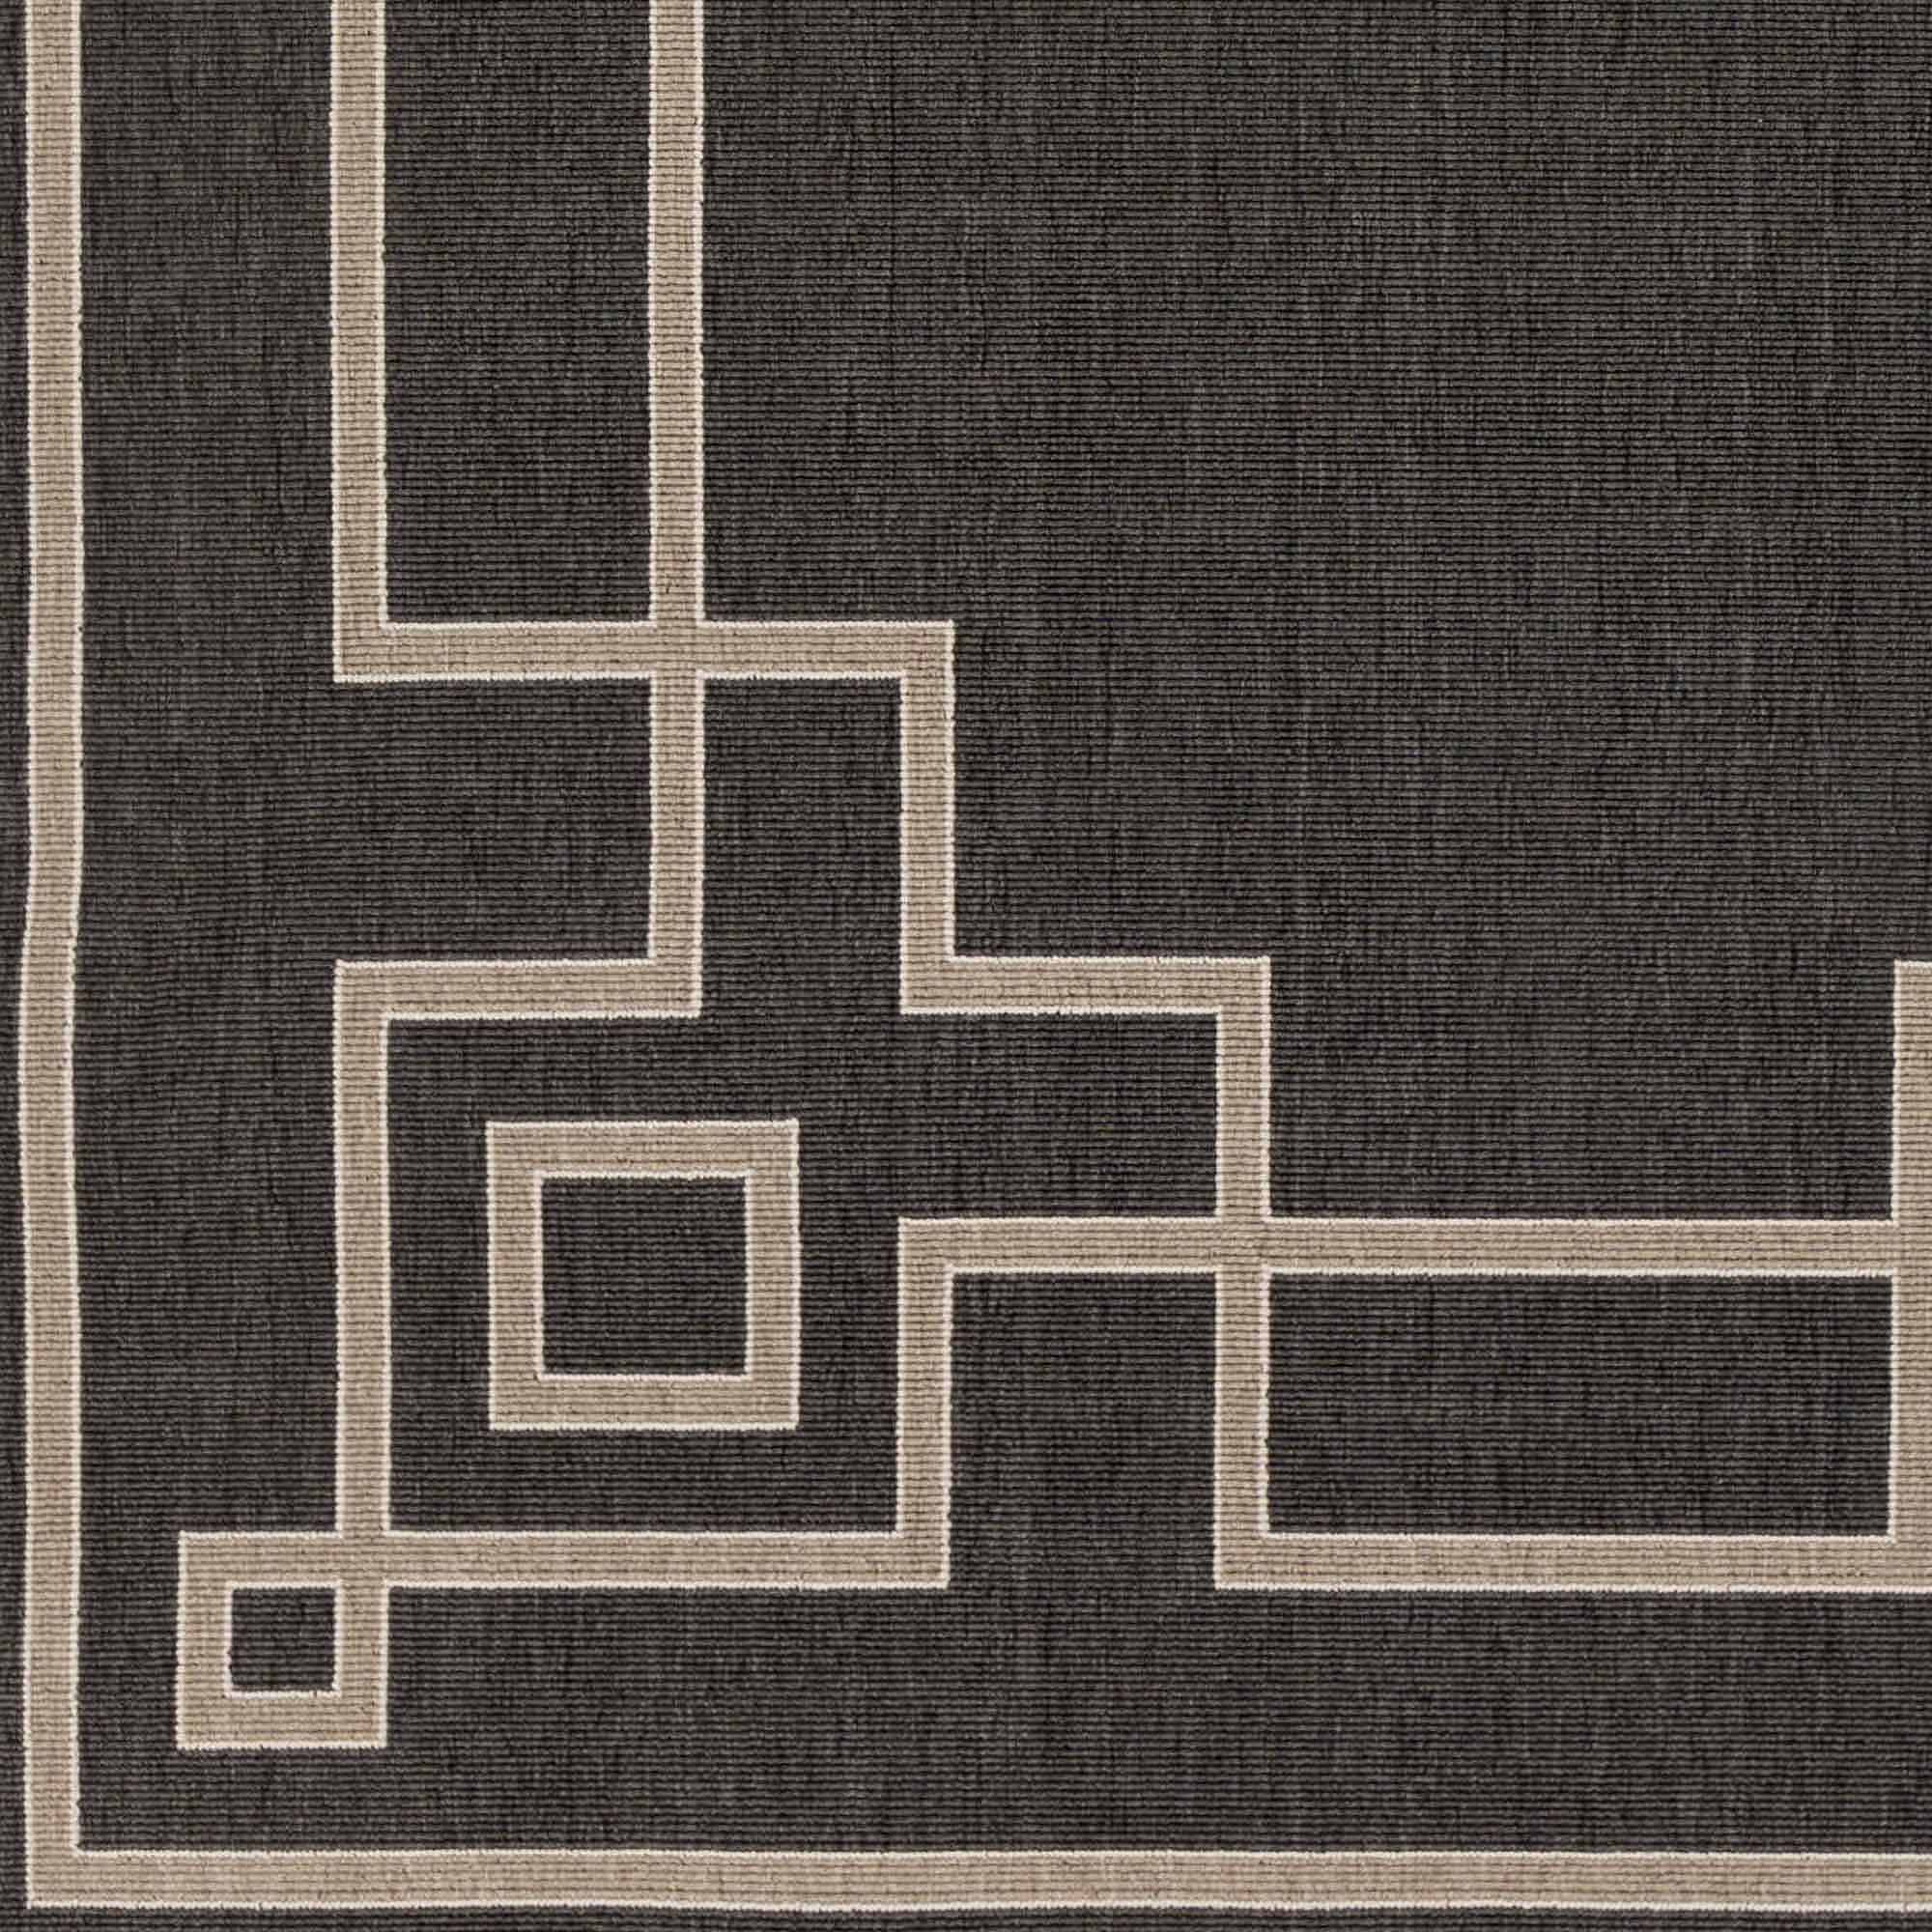 Art of Knot Luxor Machine Made Greek Key Border Indoor/Outdoor Area Rug, Black